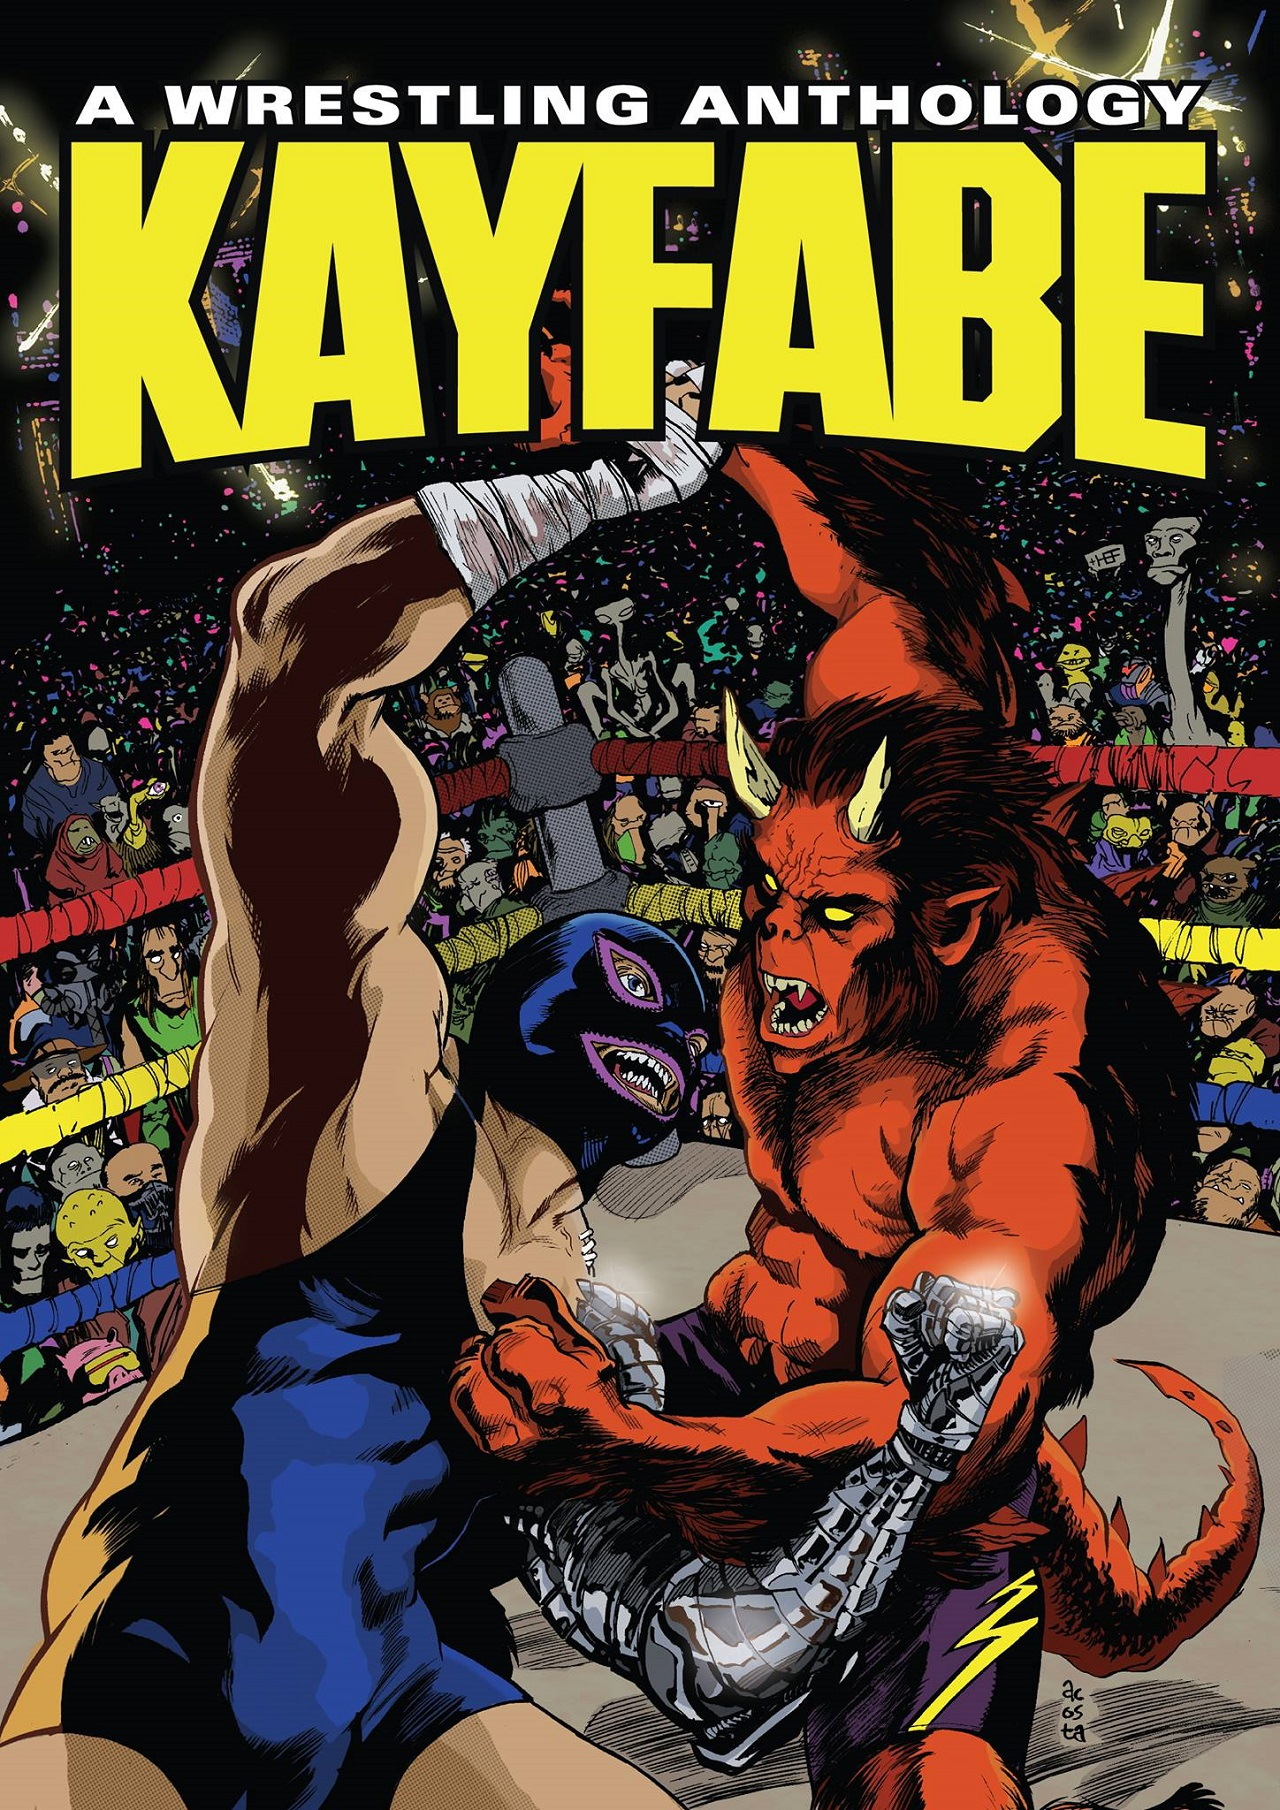 Review – Kayfabe: A Wrestling Anthology